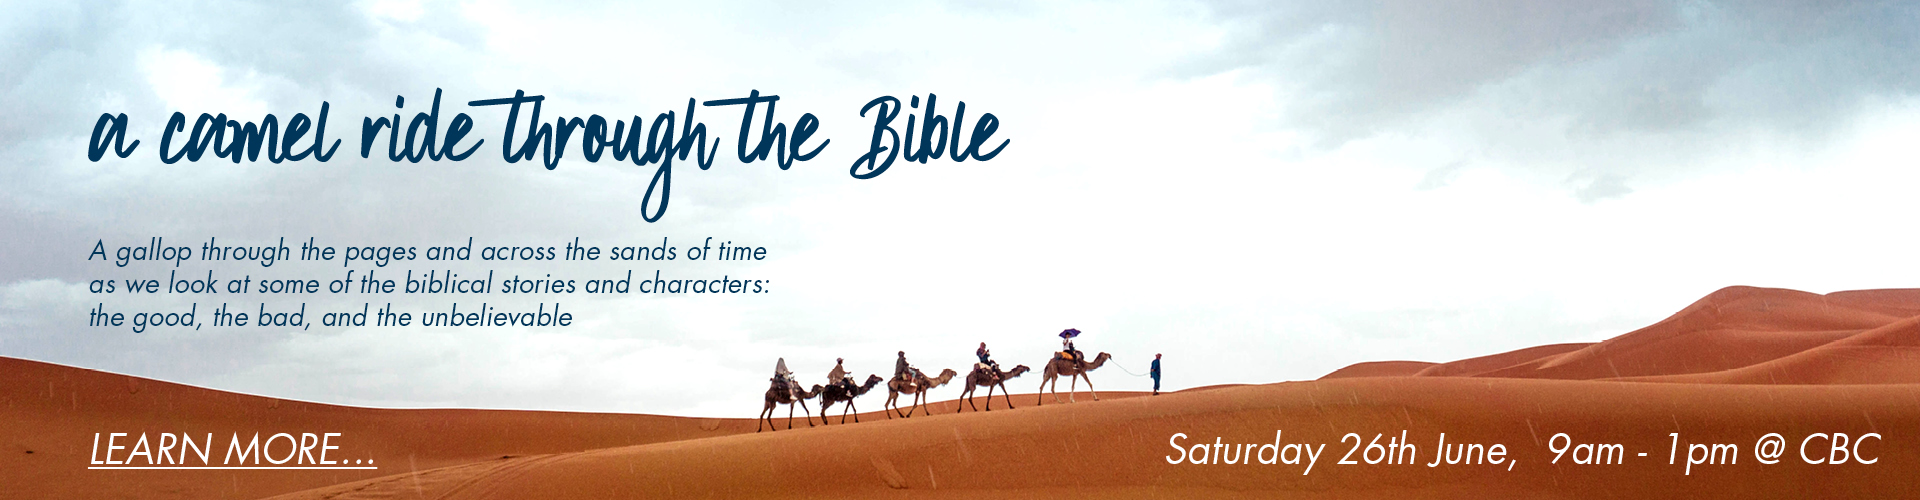 CBC Womens Ministry Camel Ride through the Bible